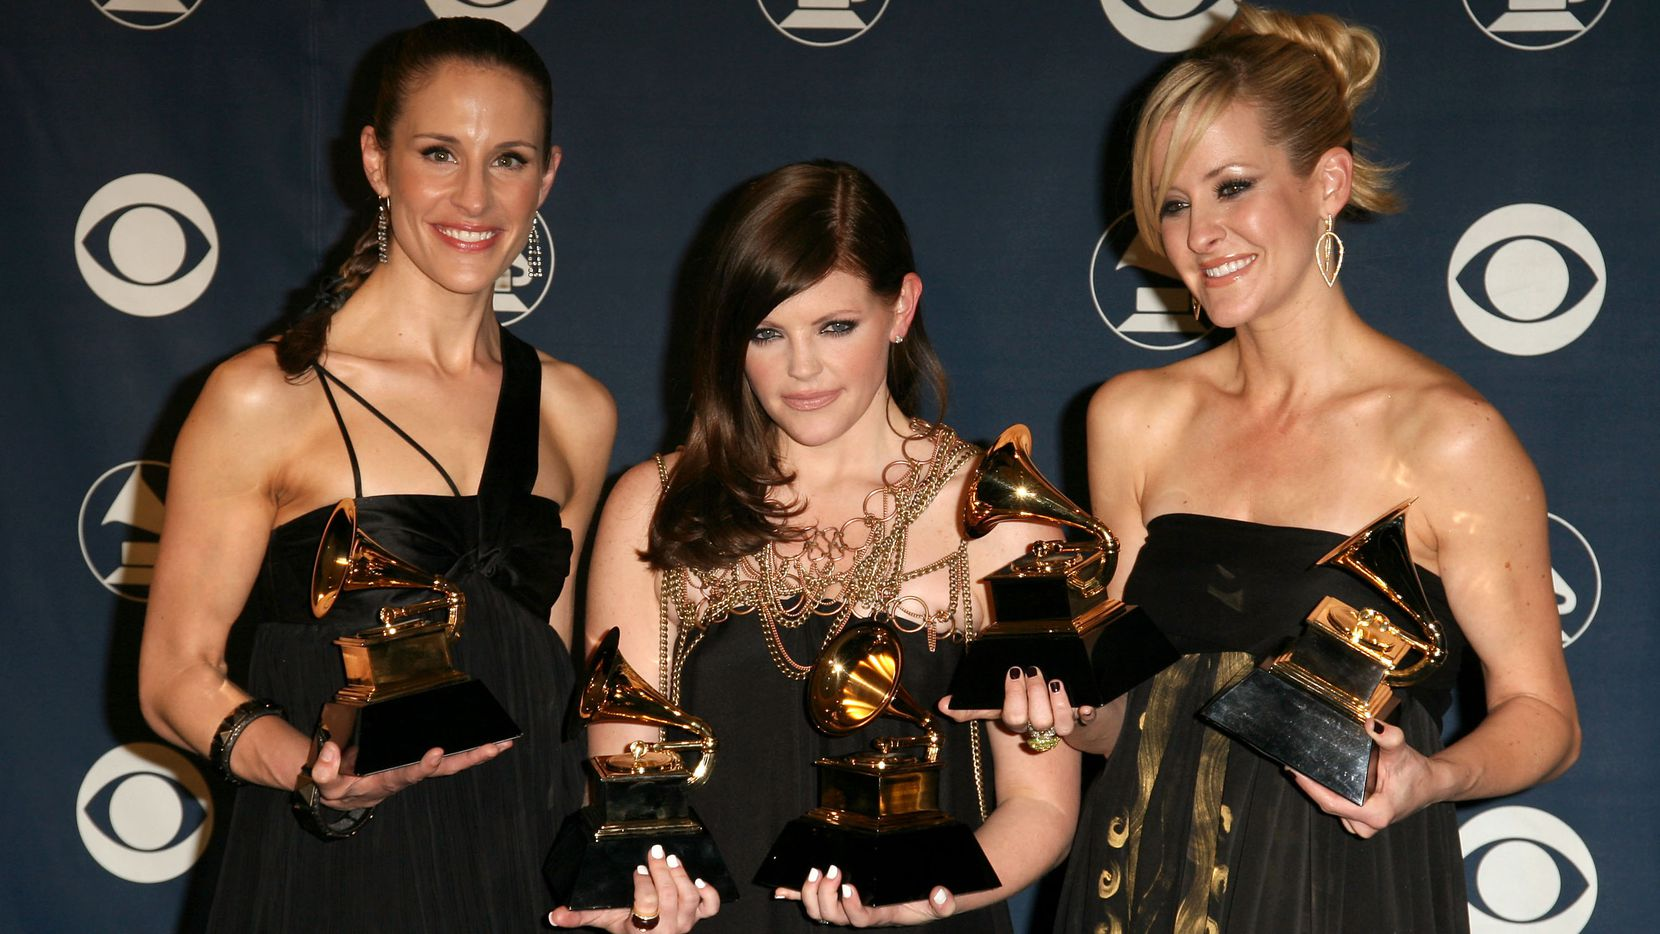 In this 2007 photo, Emily Robison, from left, Natalie Maines and Martie Maguire, of the Dixie Chicks, winners for that year's Album of the Year, Record of the Year, Song of the Year, Best Country Performance by a Duo or Group with Vocal and Best Country Album, stand in the pressroom at the 49th Annual Grammy Awards at the Staples Center in Los Angeles, Calif.